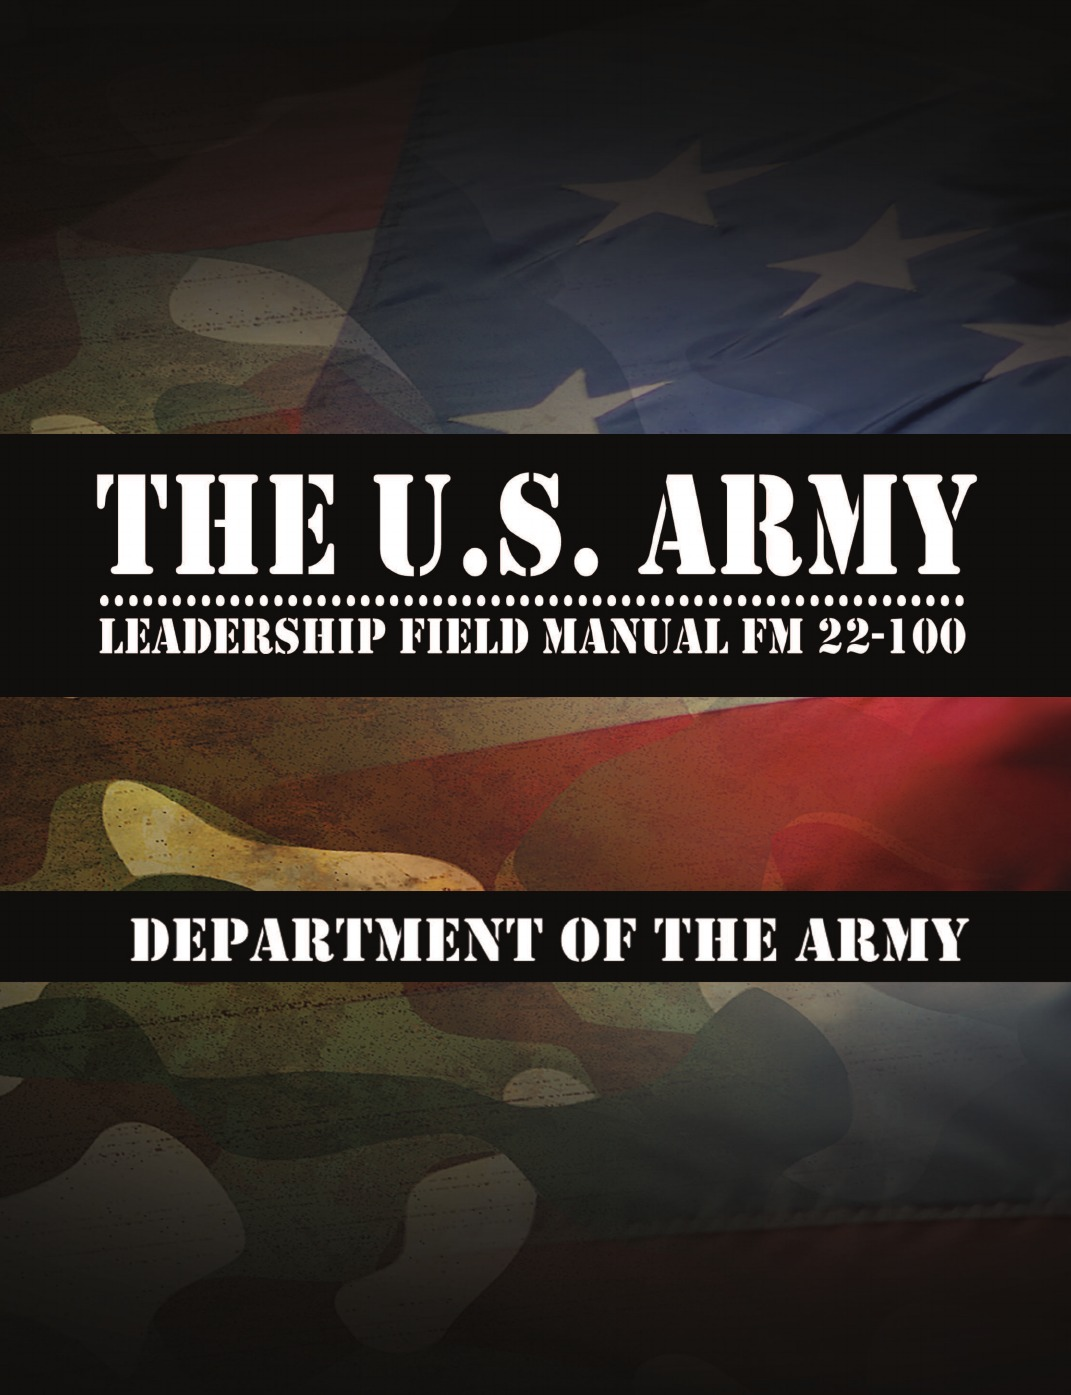 Leadership Center for Army and Us Army The U.S. Army Leadership Field Manual FM 22-100 sherwyn morreale building the high trust organization strategies for supporting five key dimensions of trust